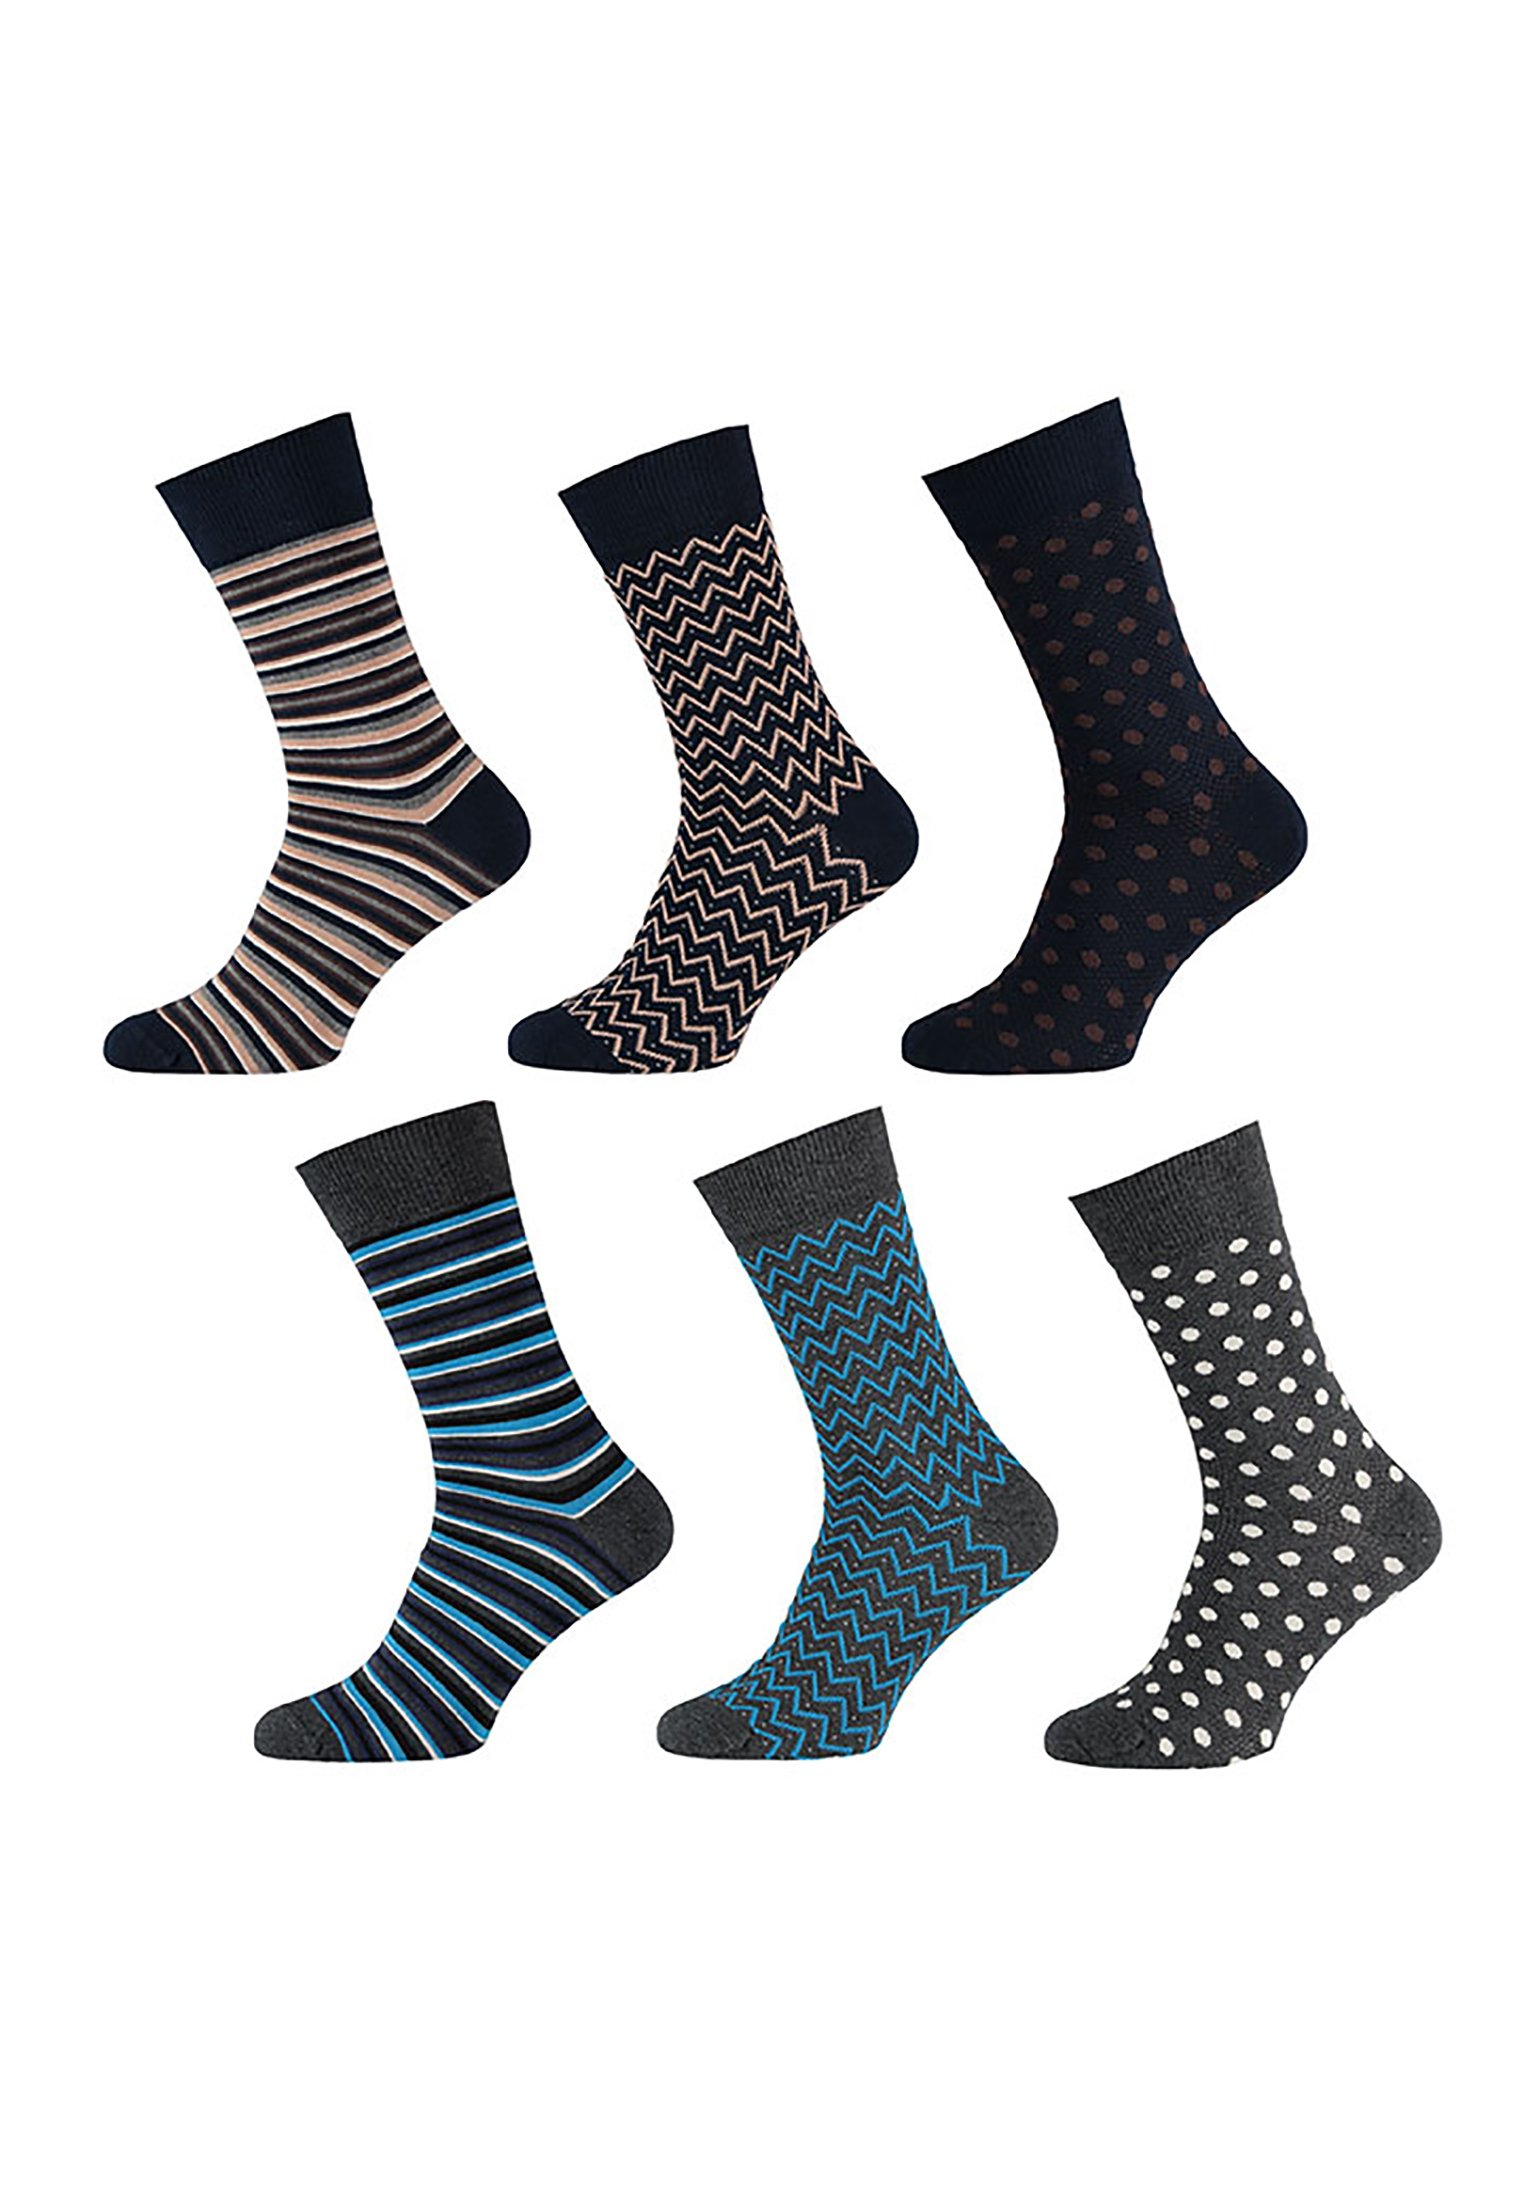 Homme 6 pack - Chaussettes